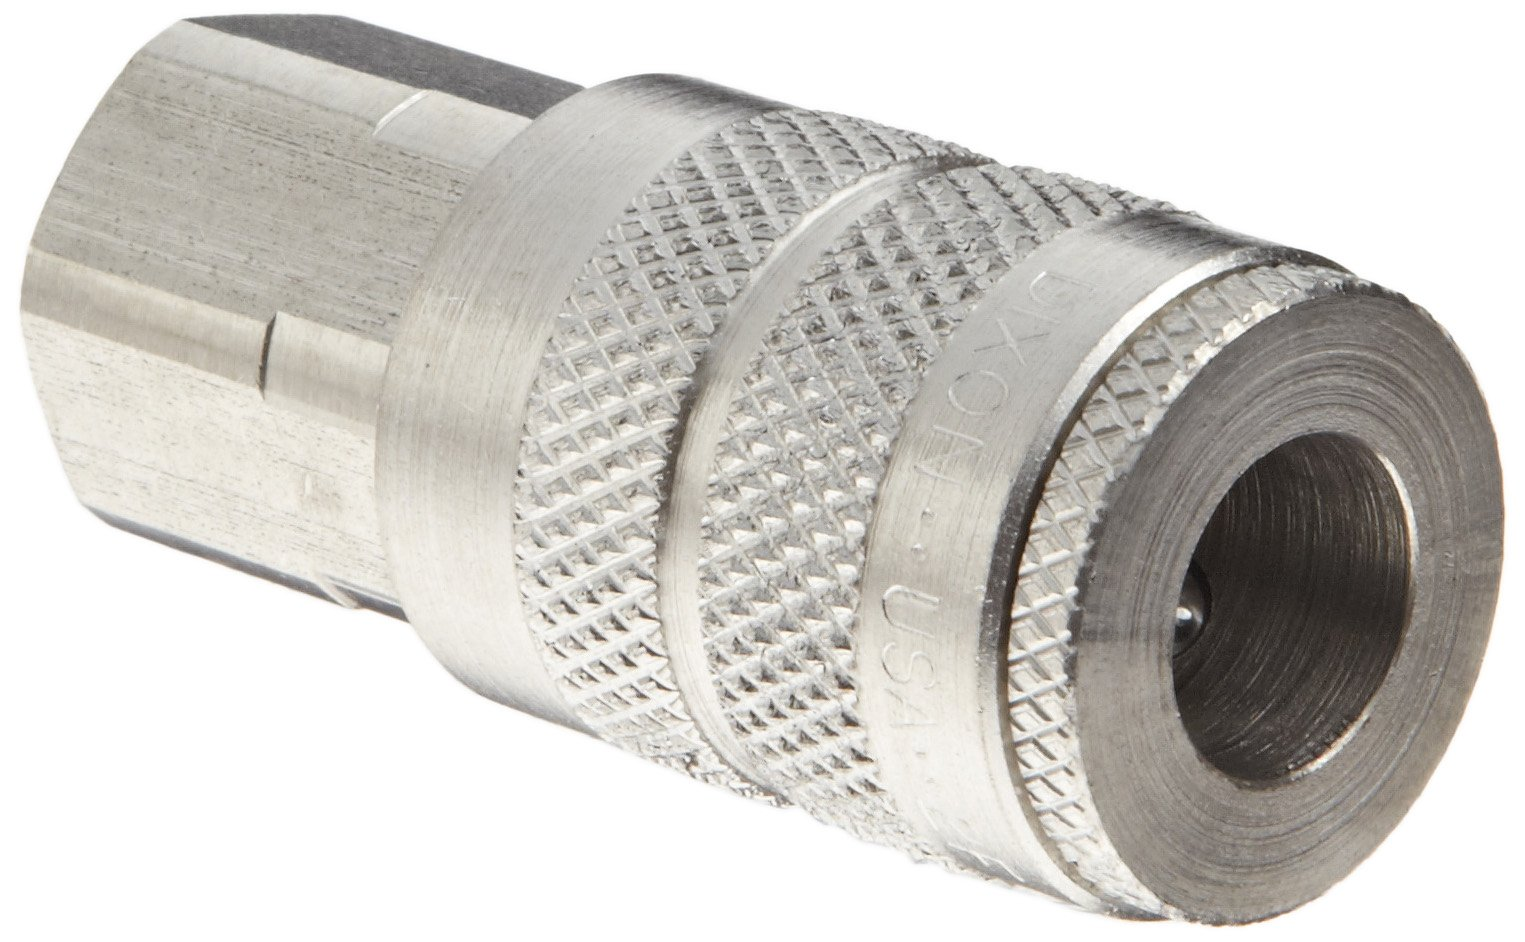 Dixon DC20S Stainless Steel 303 Air Chief Industrial Interchange Quick-Connect Hose Fitting, 1/4'' Coupling x 1/4'' NPT Female